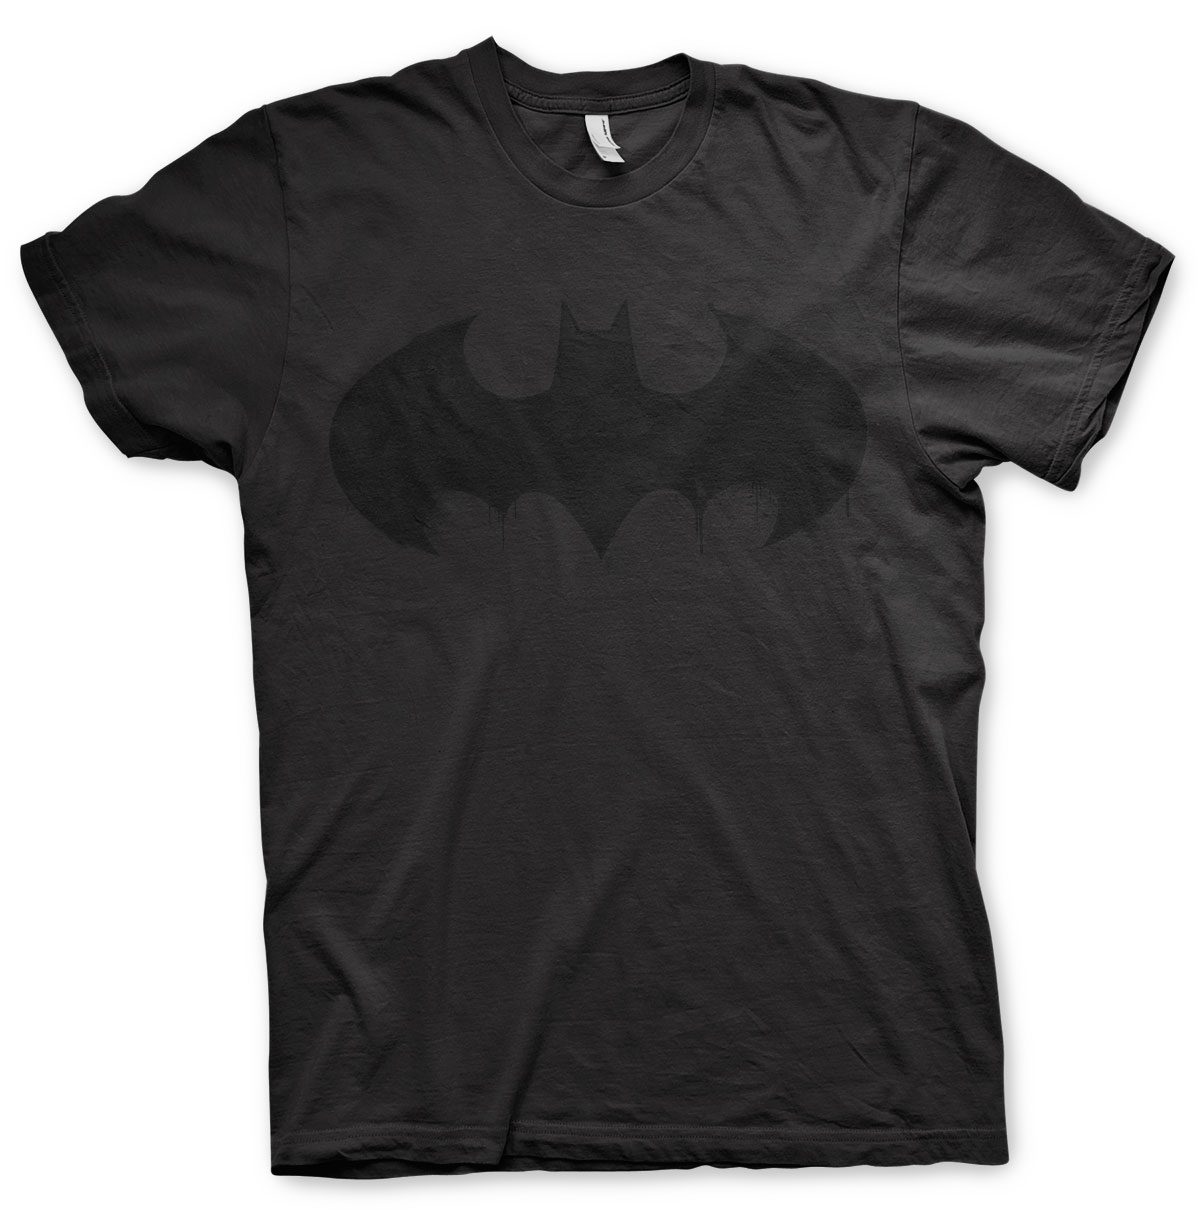 Batman Logo T-Shirt dripping